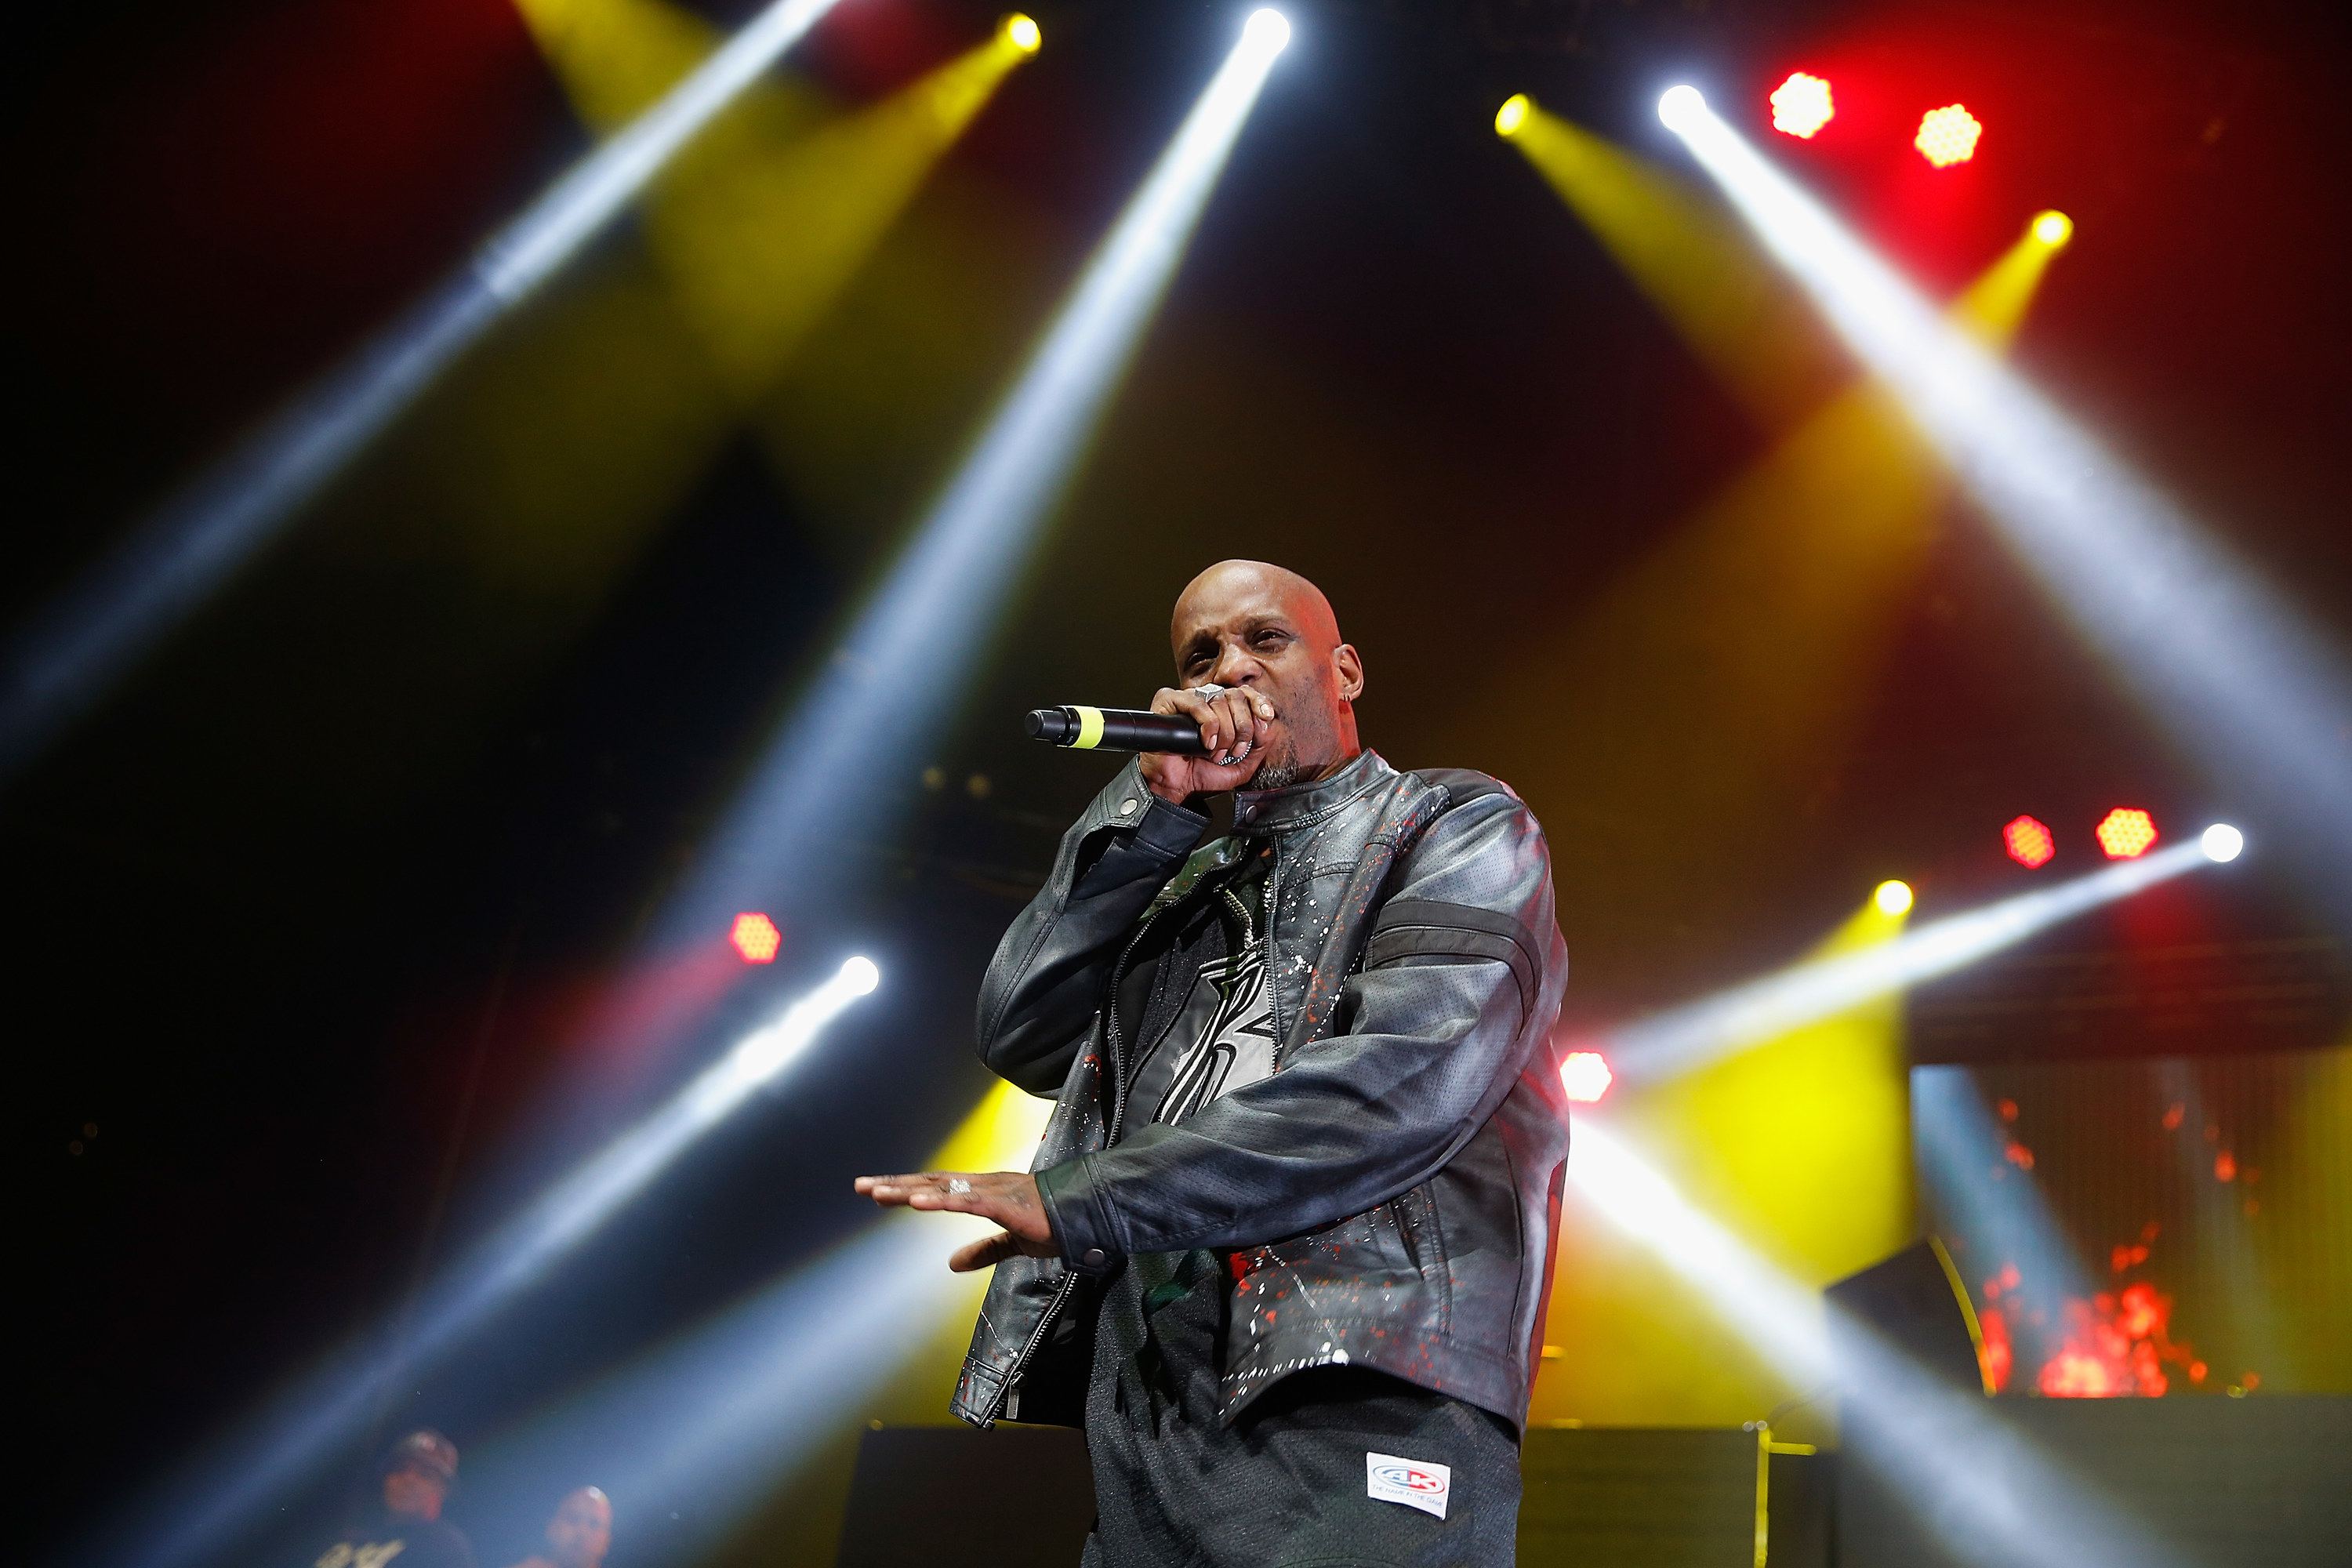 Rapper DMX performs on stage